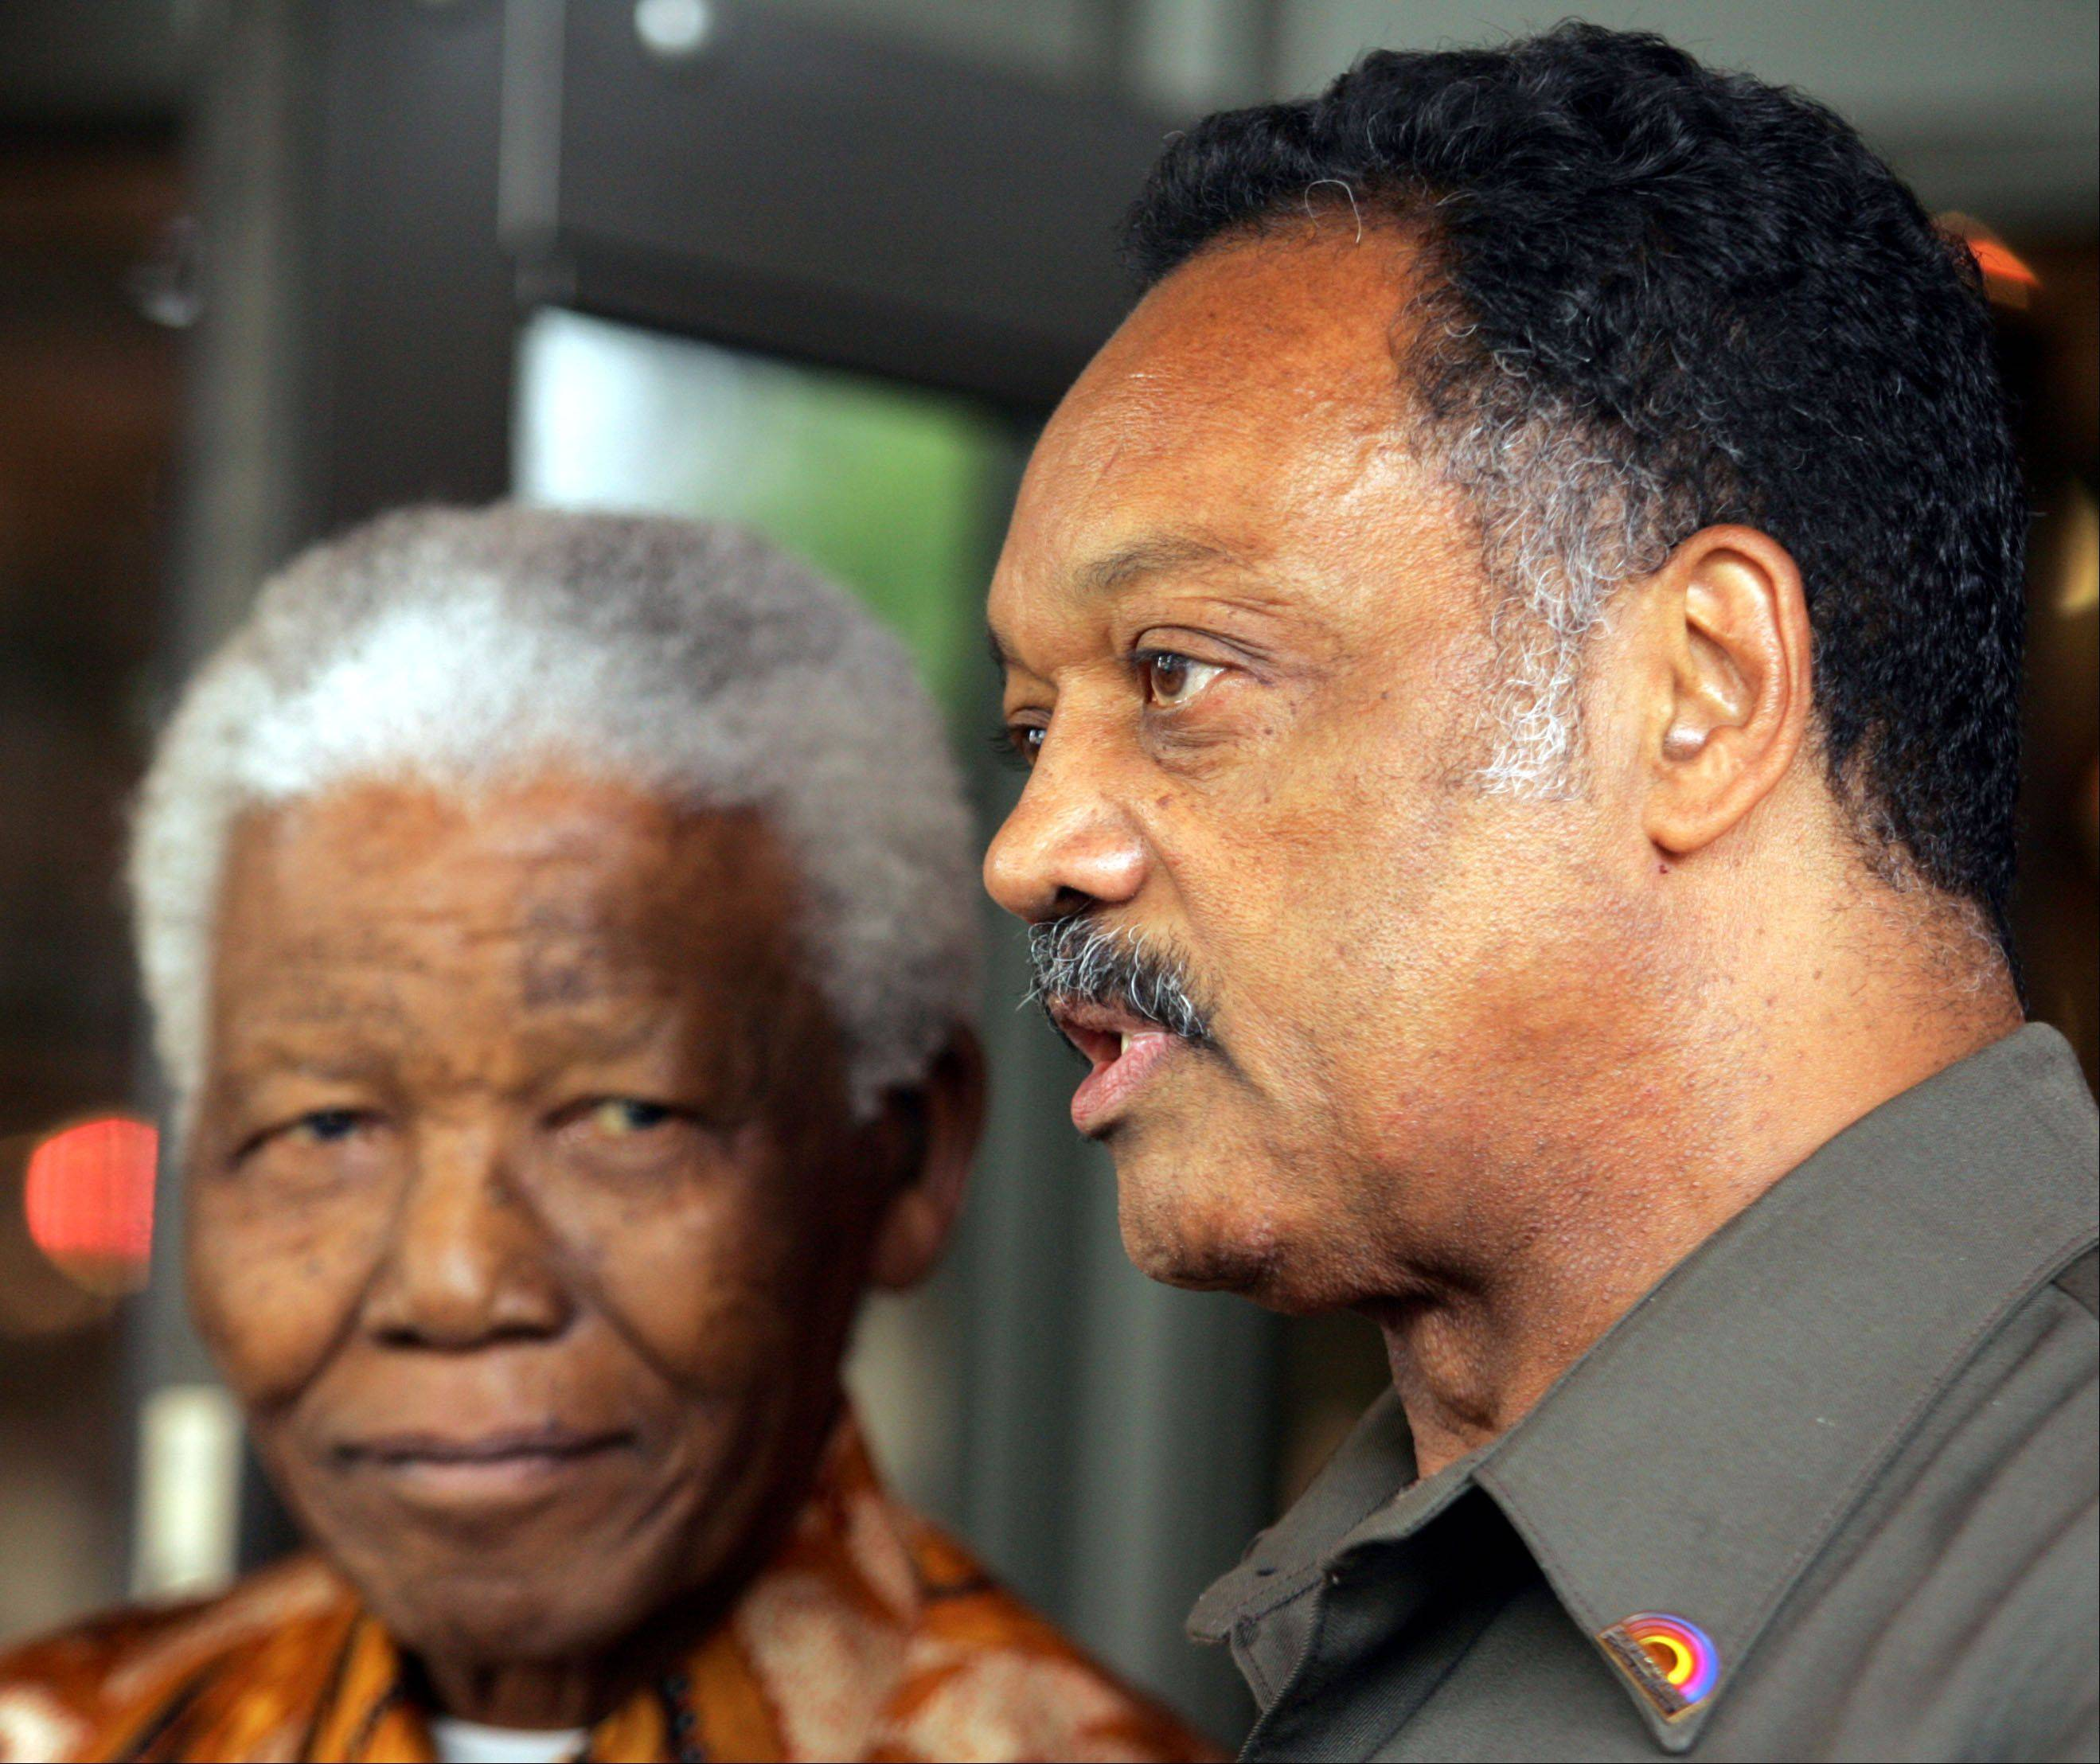 American Rev. Jesse Jackson, right, speaks to journalist as former South African president Nelson Mandela, left, looks on after their meeting in Johannesburg, South Africa, Wednesday, Oct. 26, 2005.